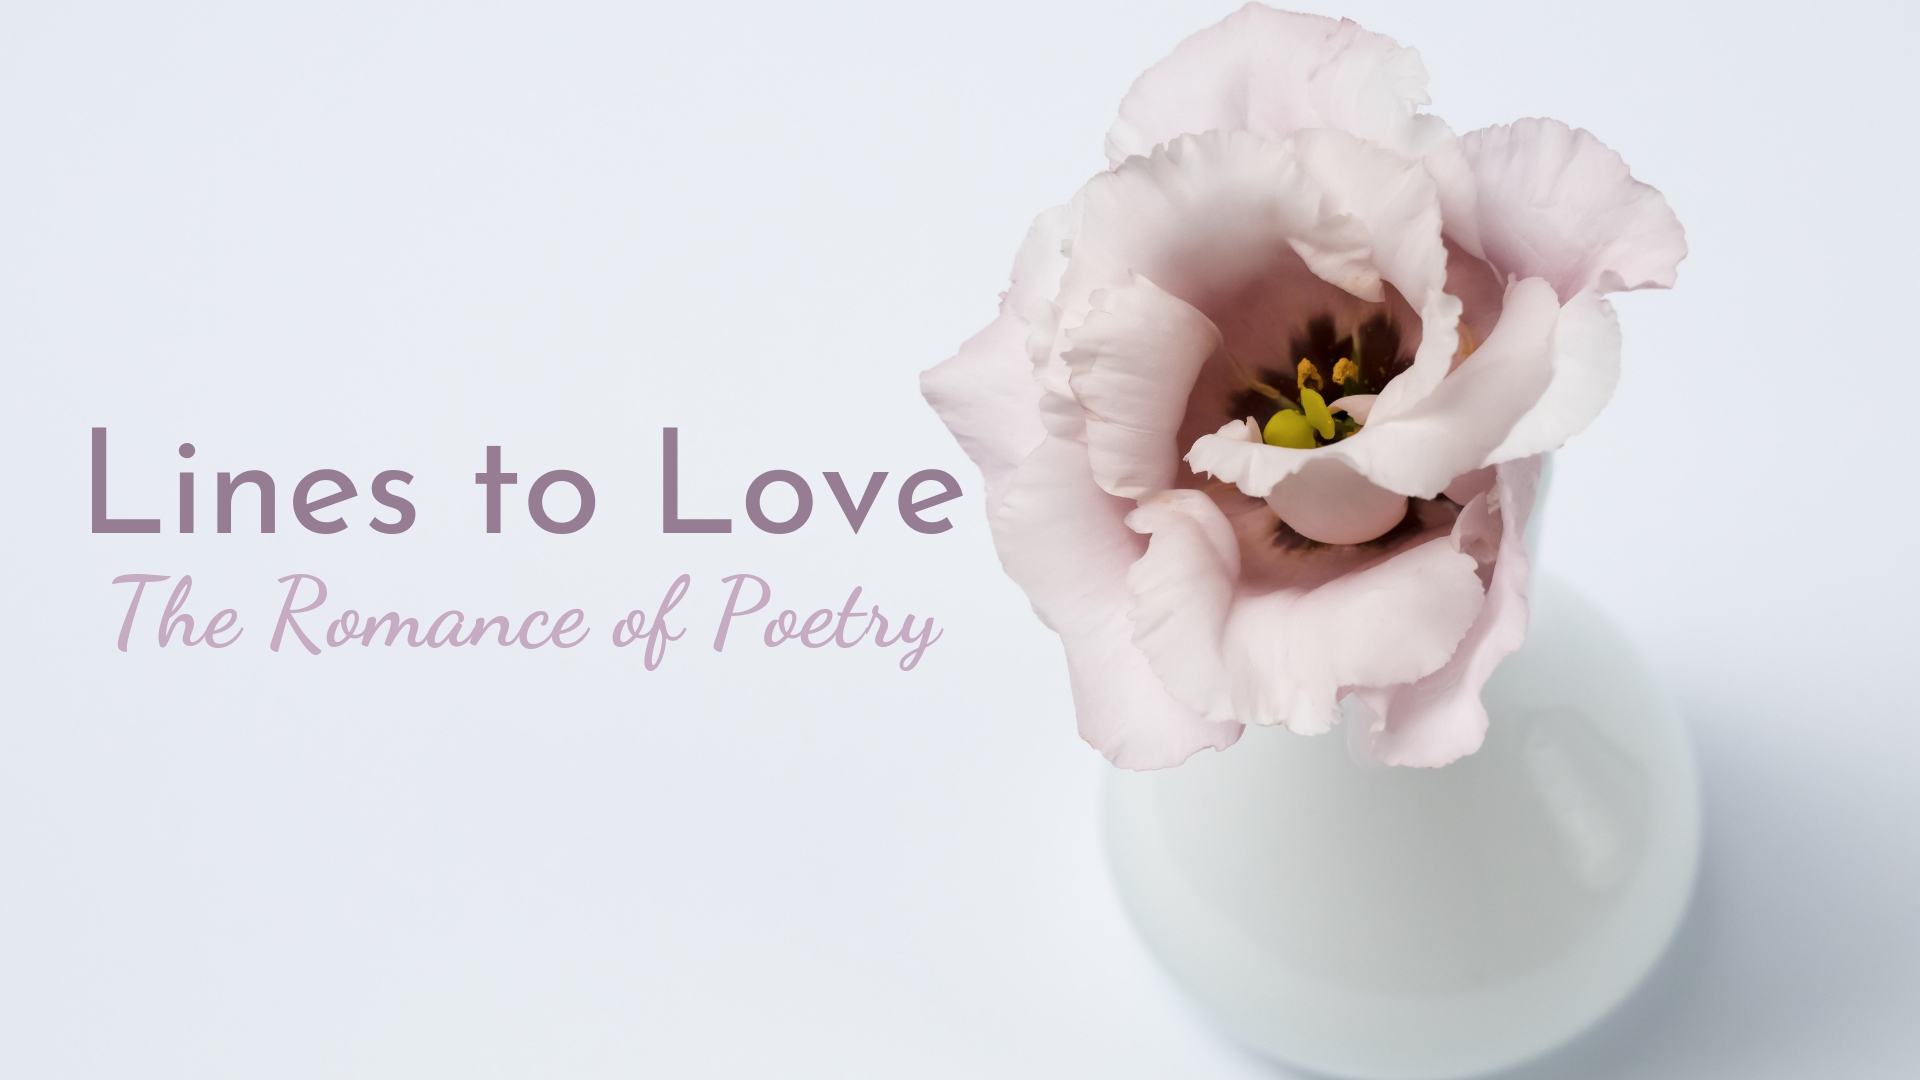 banner-lines-to-love-the-romance-of-poetry-01.jpg